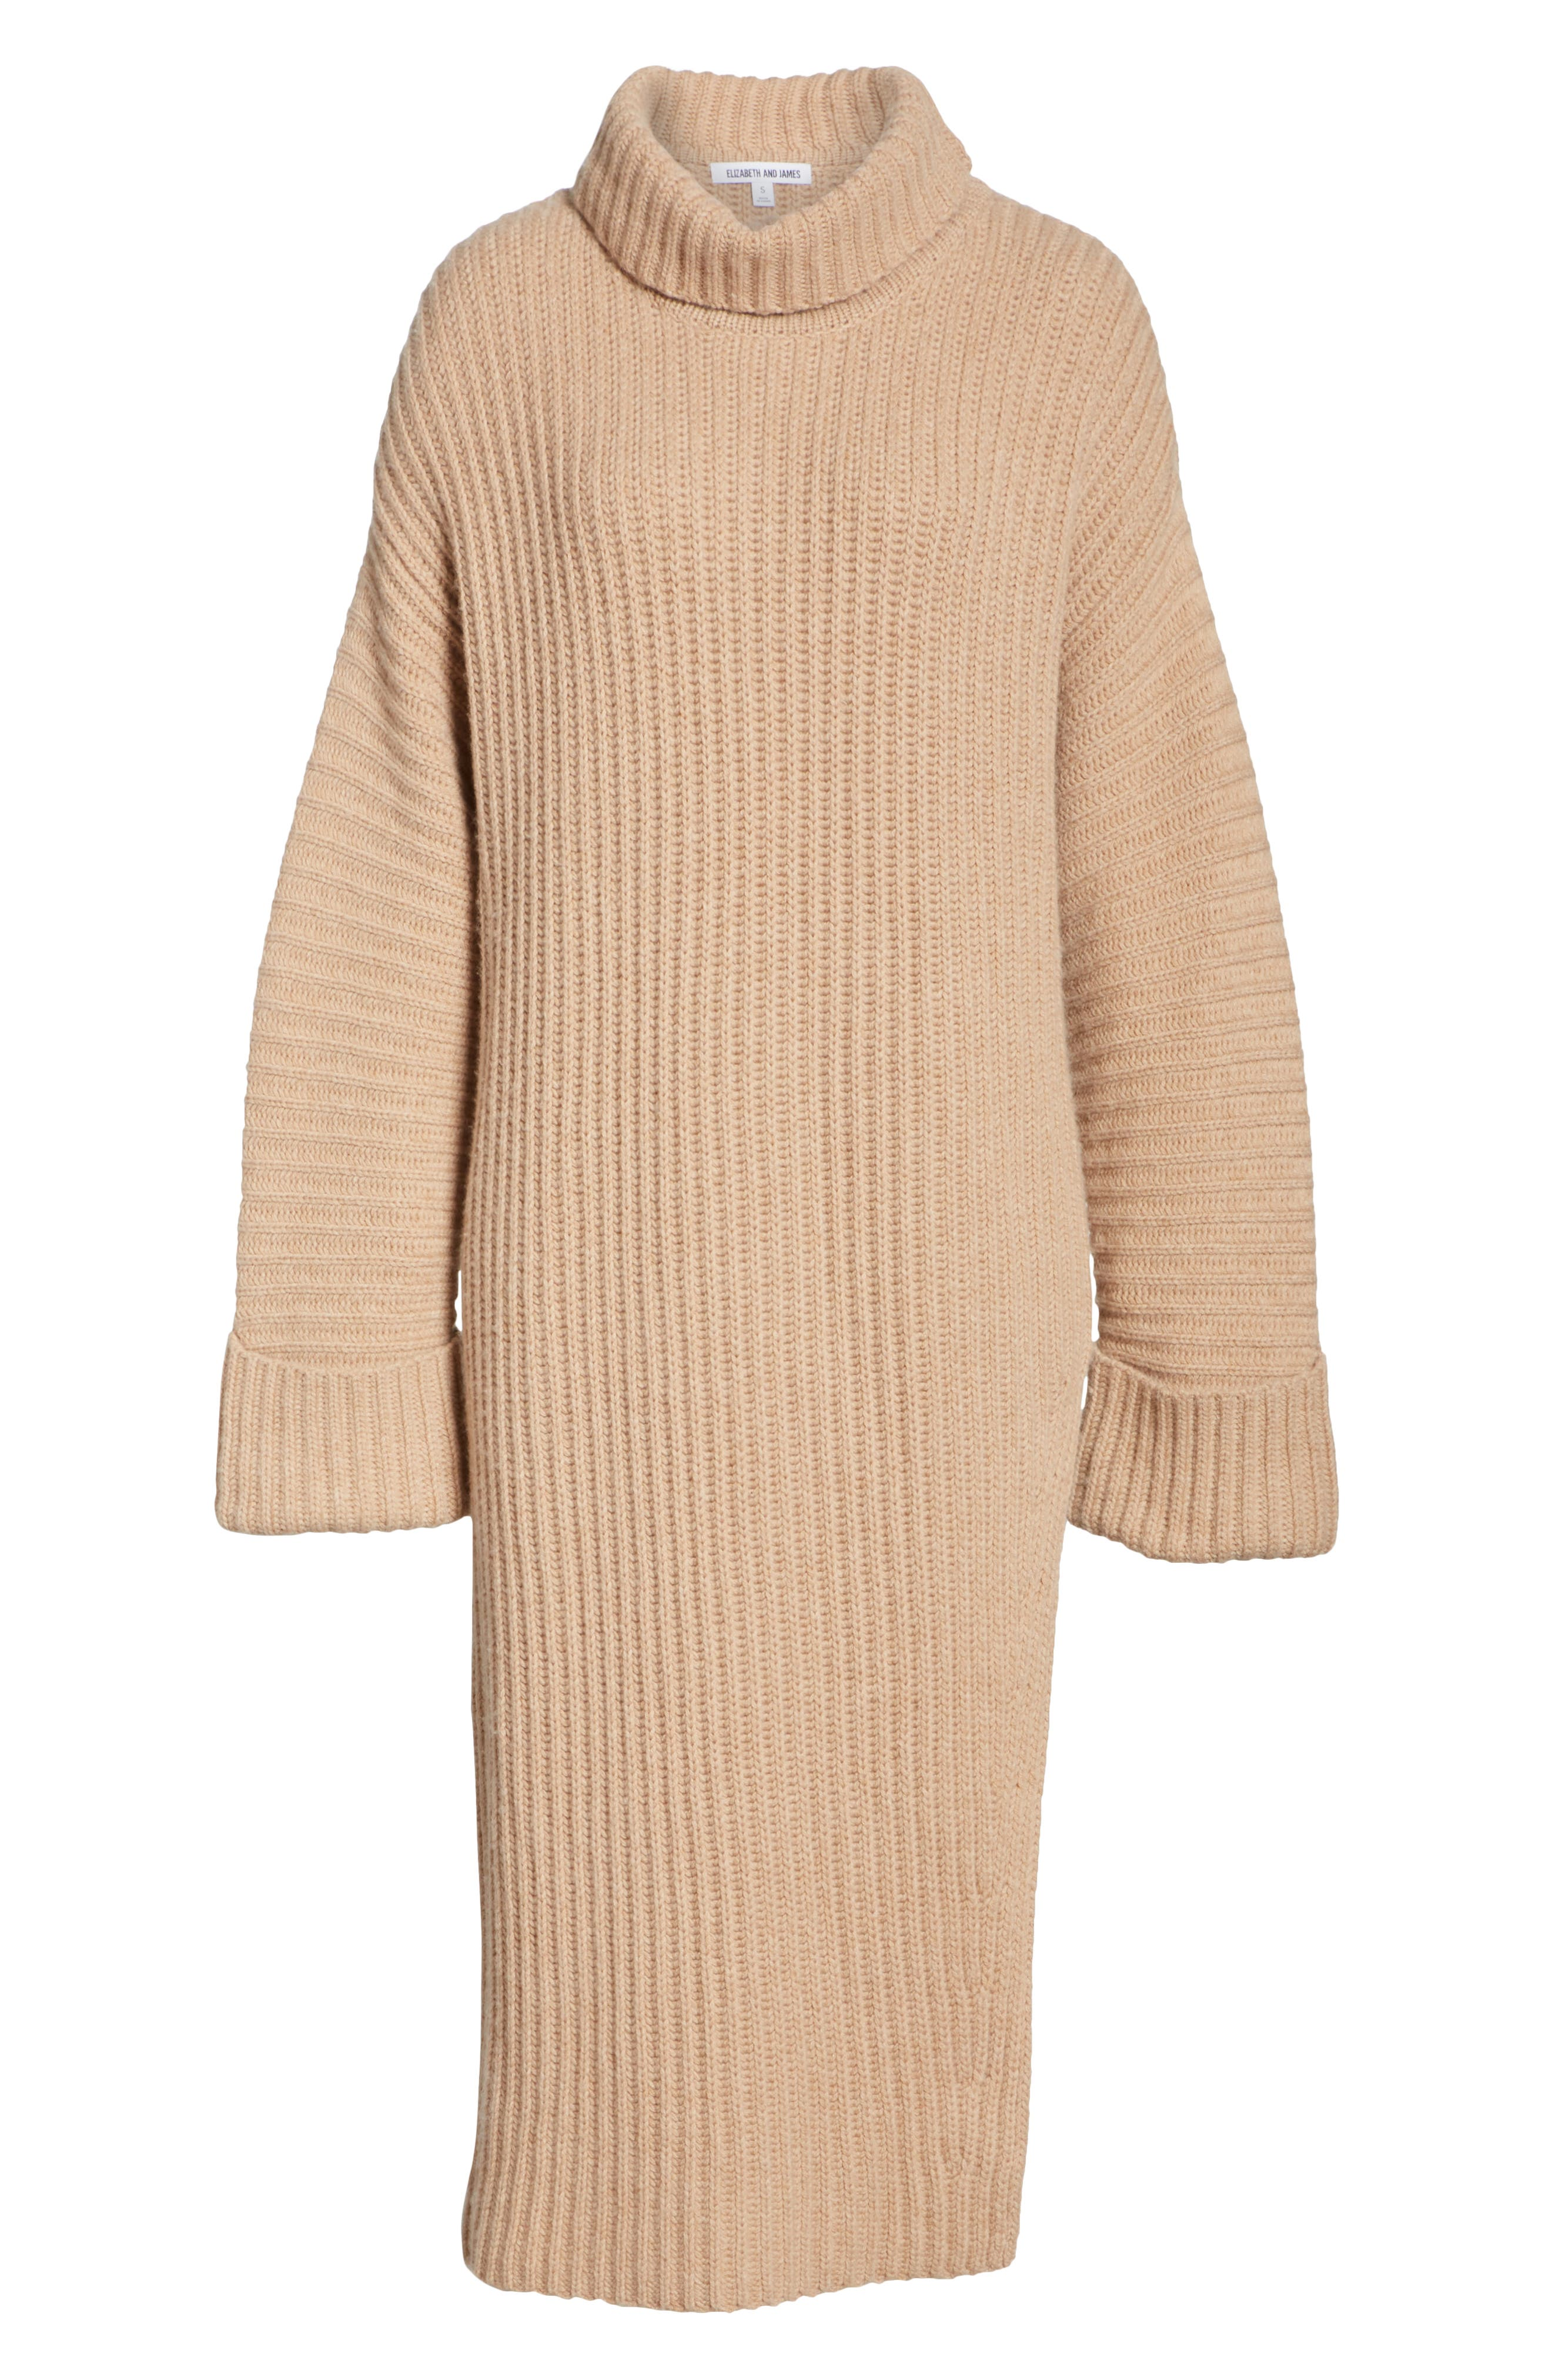 ELIZABETH AND JAMES,                             Mae Wool & Cashmere Sweater,                             Alternate thumbnail 6, color,                             250